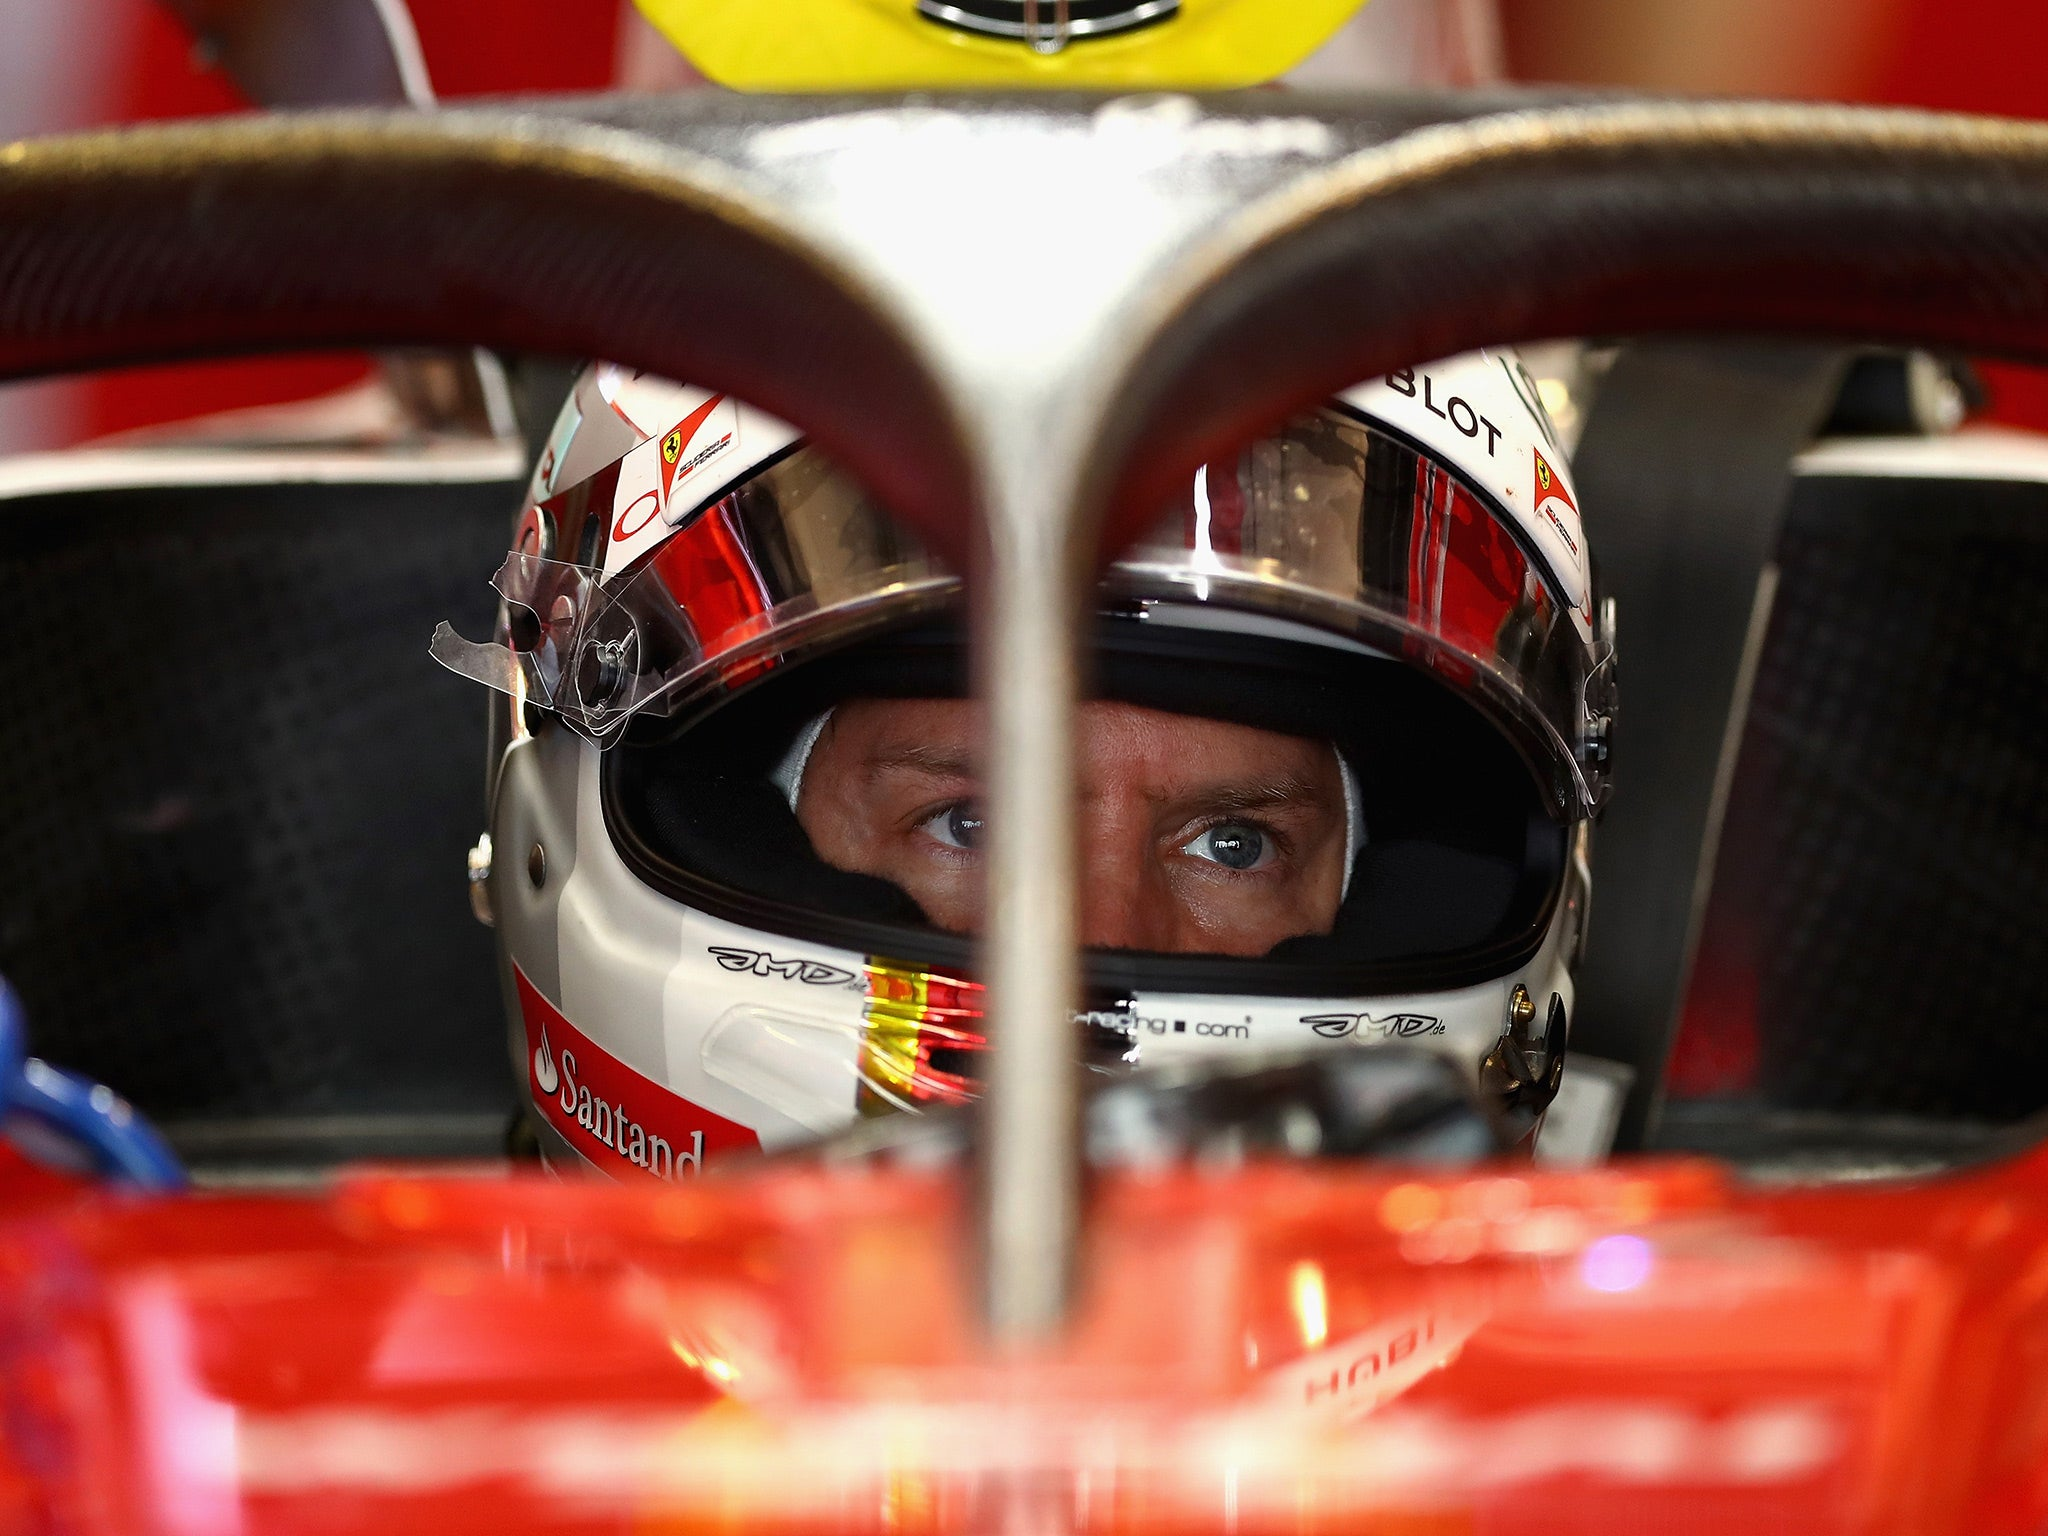 Hungarian grand prix sebastian vettel and max verstappen weigh in on halo protection controversy the independent